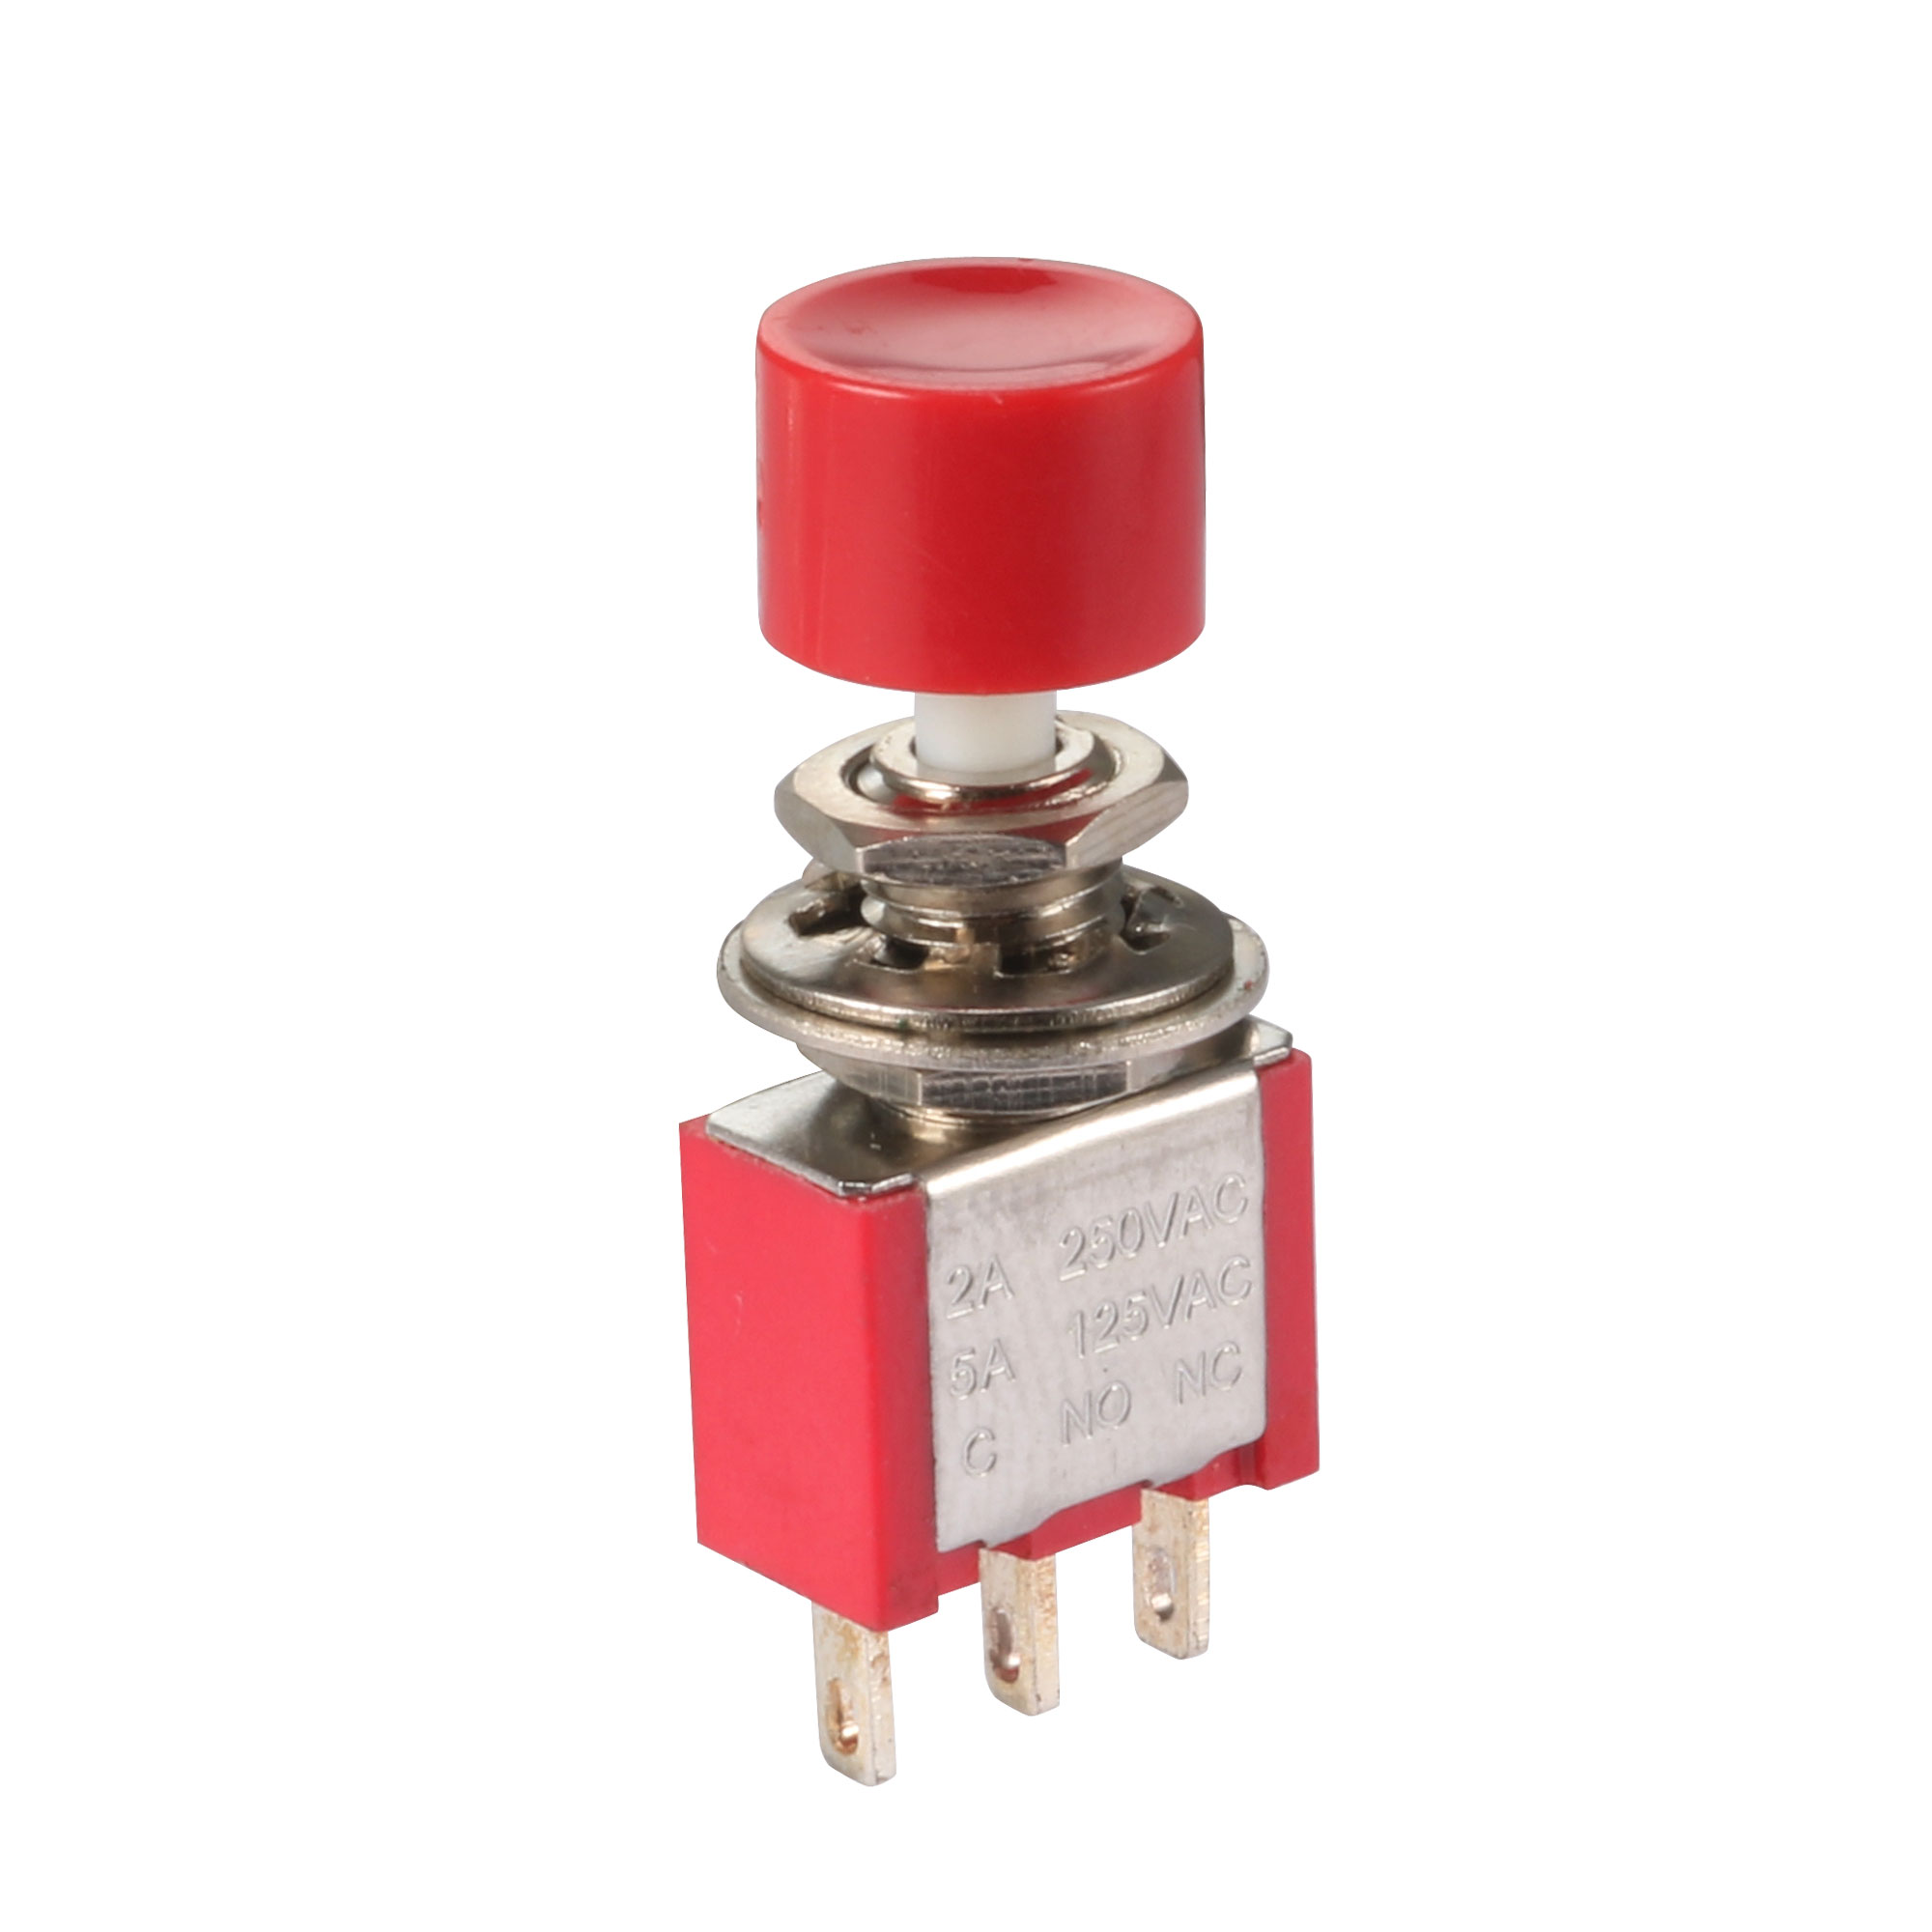 AC 2A/250V 5A/120V 3 Pin SPDT Momentary Push Button Pushbutton Switch 1 NO 1 NC